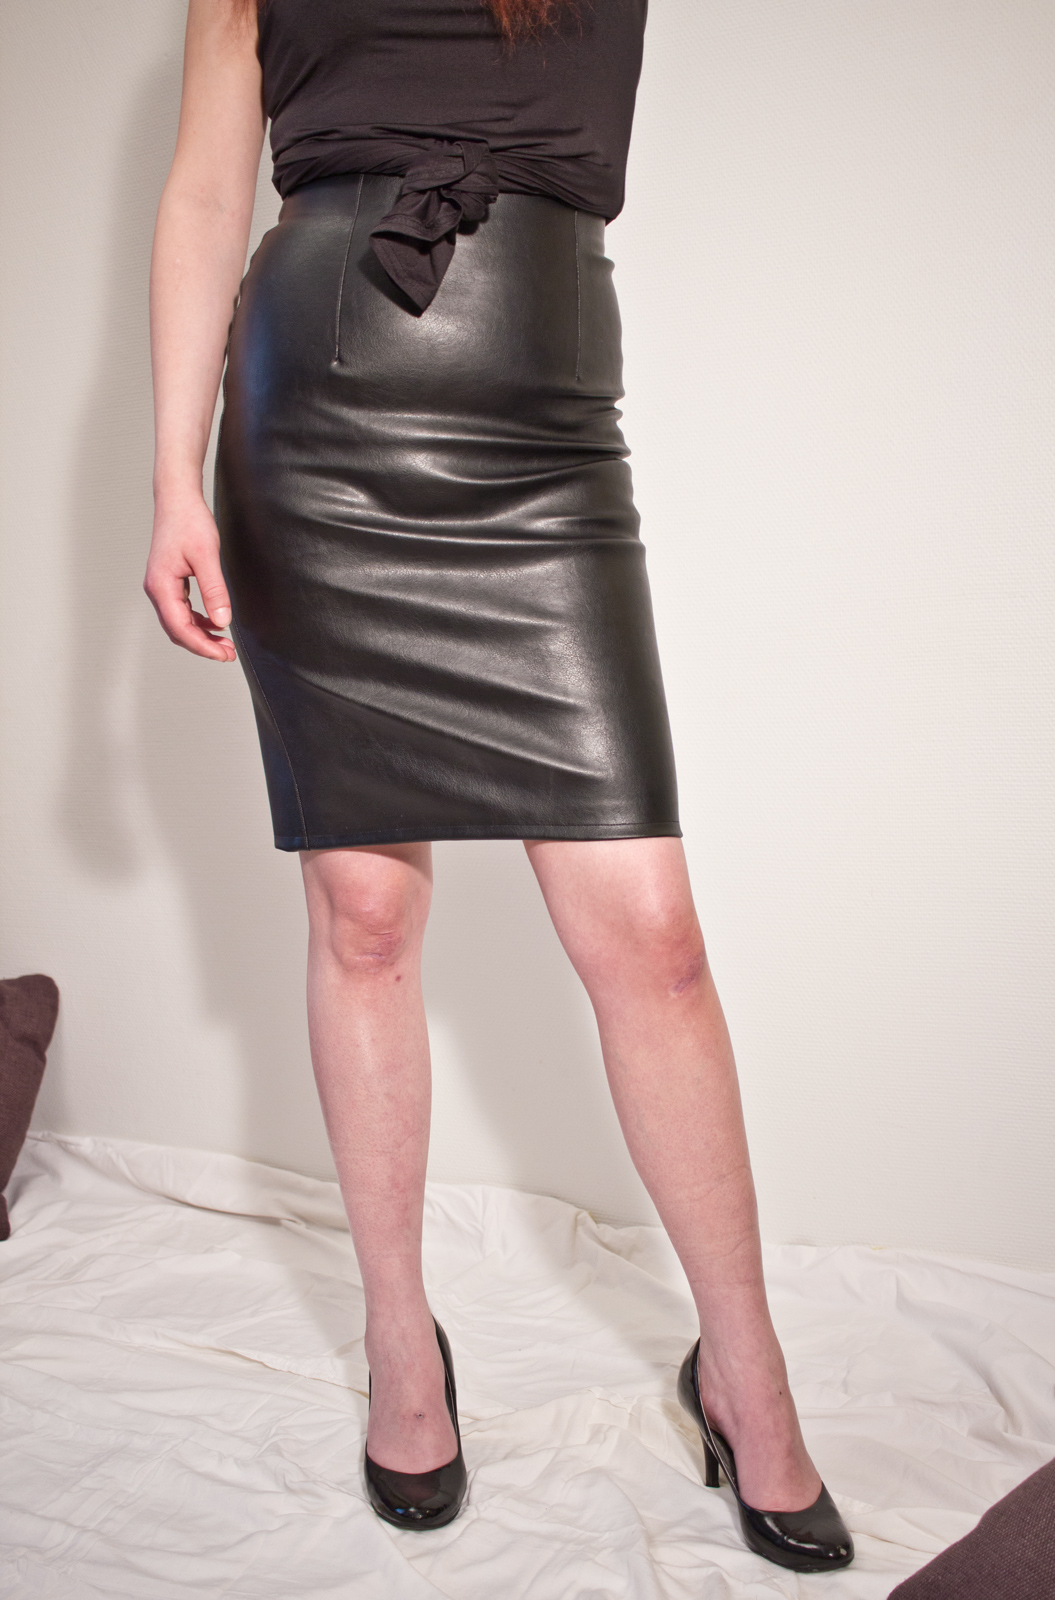 If it's a new out-out outfit you need, pick up a leather look mini in black and style it out with a lace bodysuit, and for a office look you won't ever wanna take off, our PU and faux leather midi skirts are perfect for tucking blouses into.